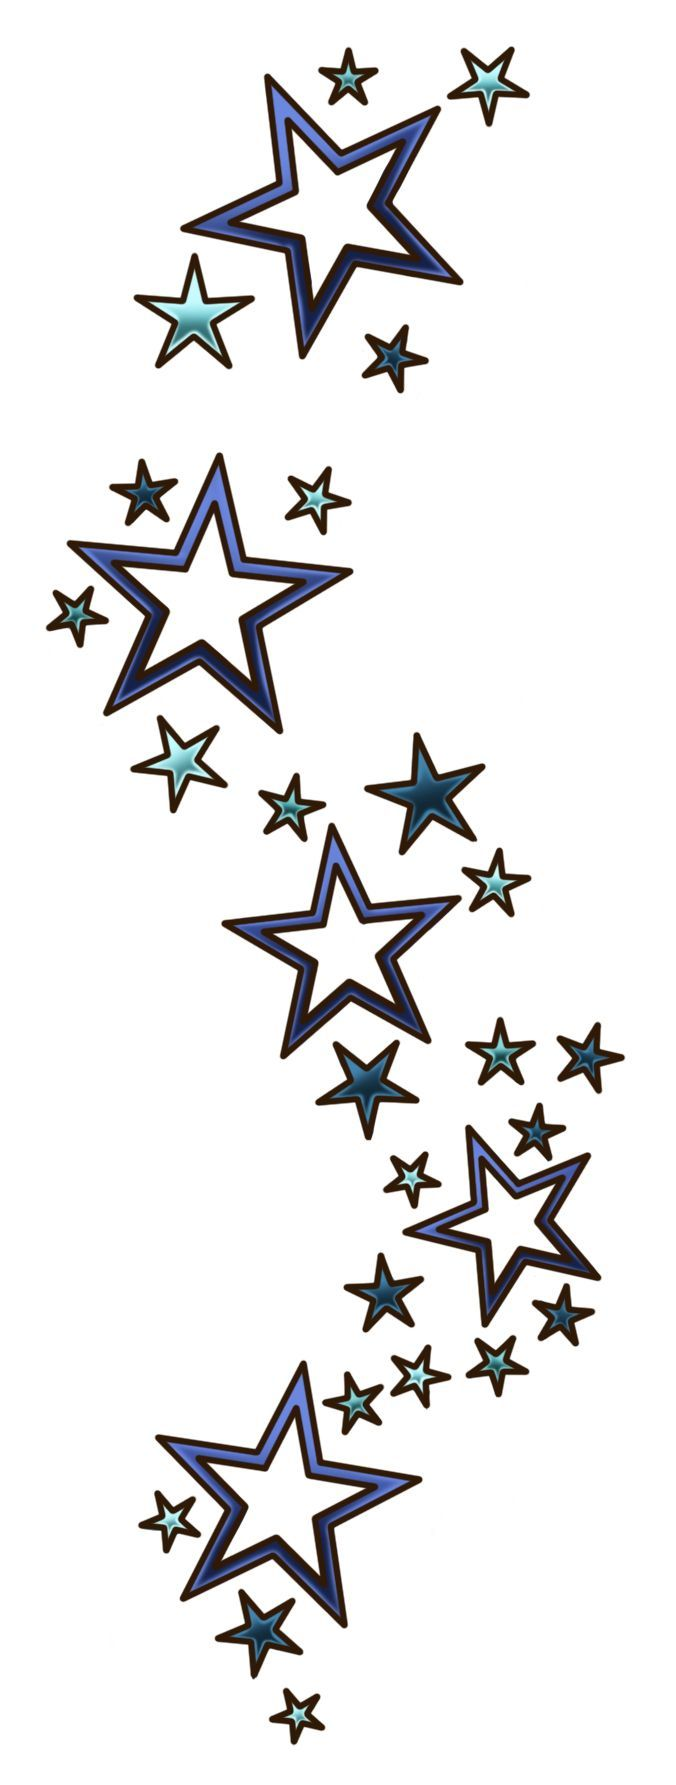 Download Free Star Tattoo Design 3 Ideas Men Women Tattoos to use and take to your artist.